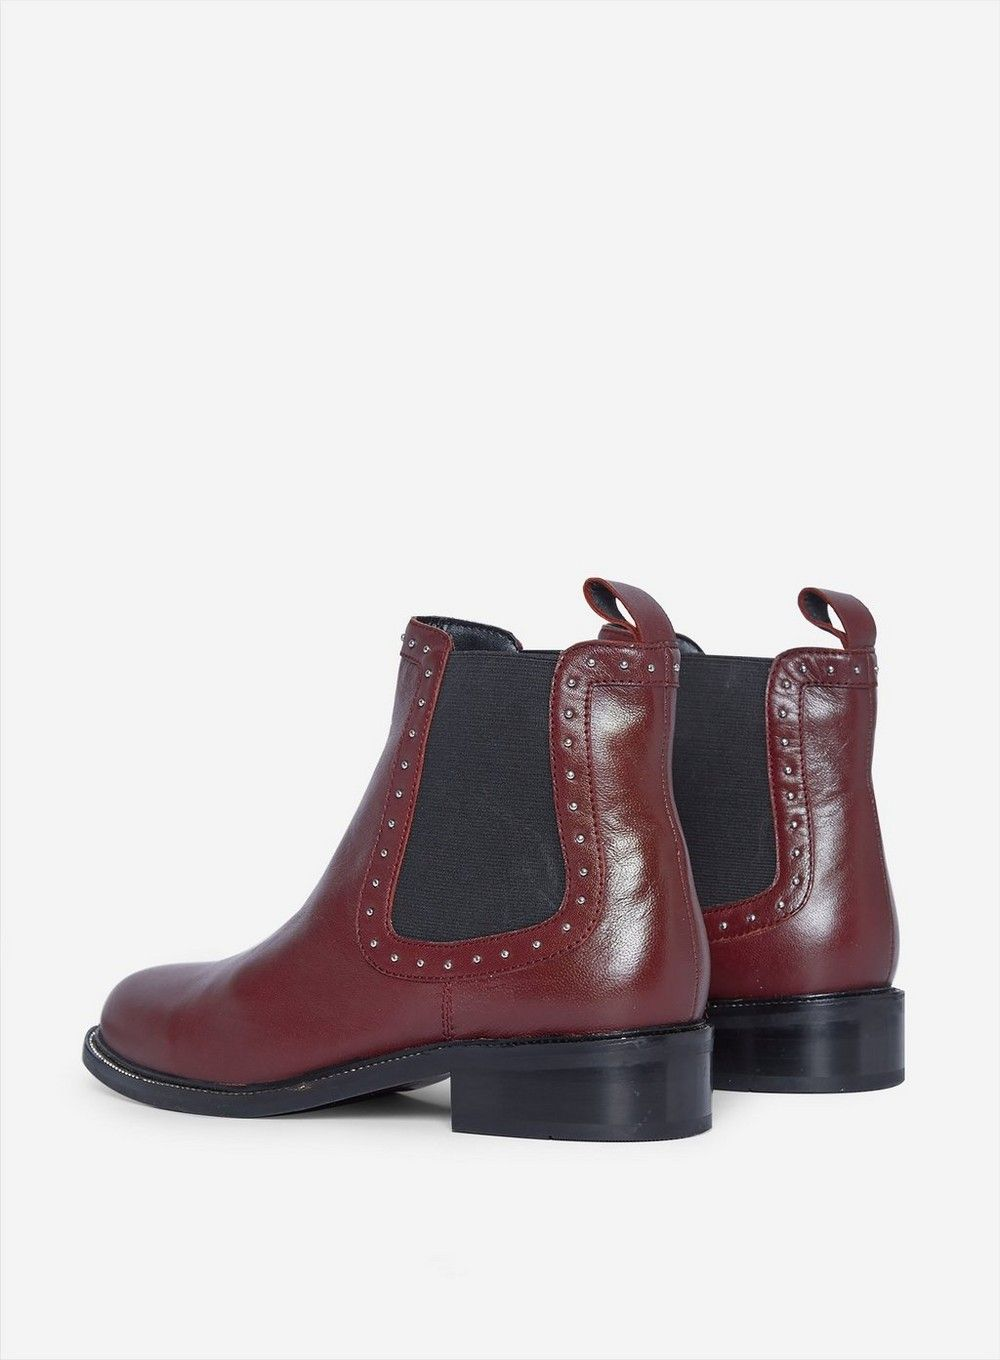 Dorothy Perkins Womens Red Oti Leather Boots Flats Winter Shoes Comfort